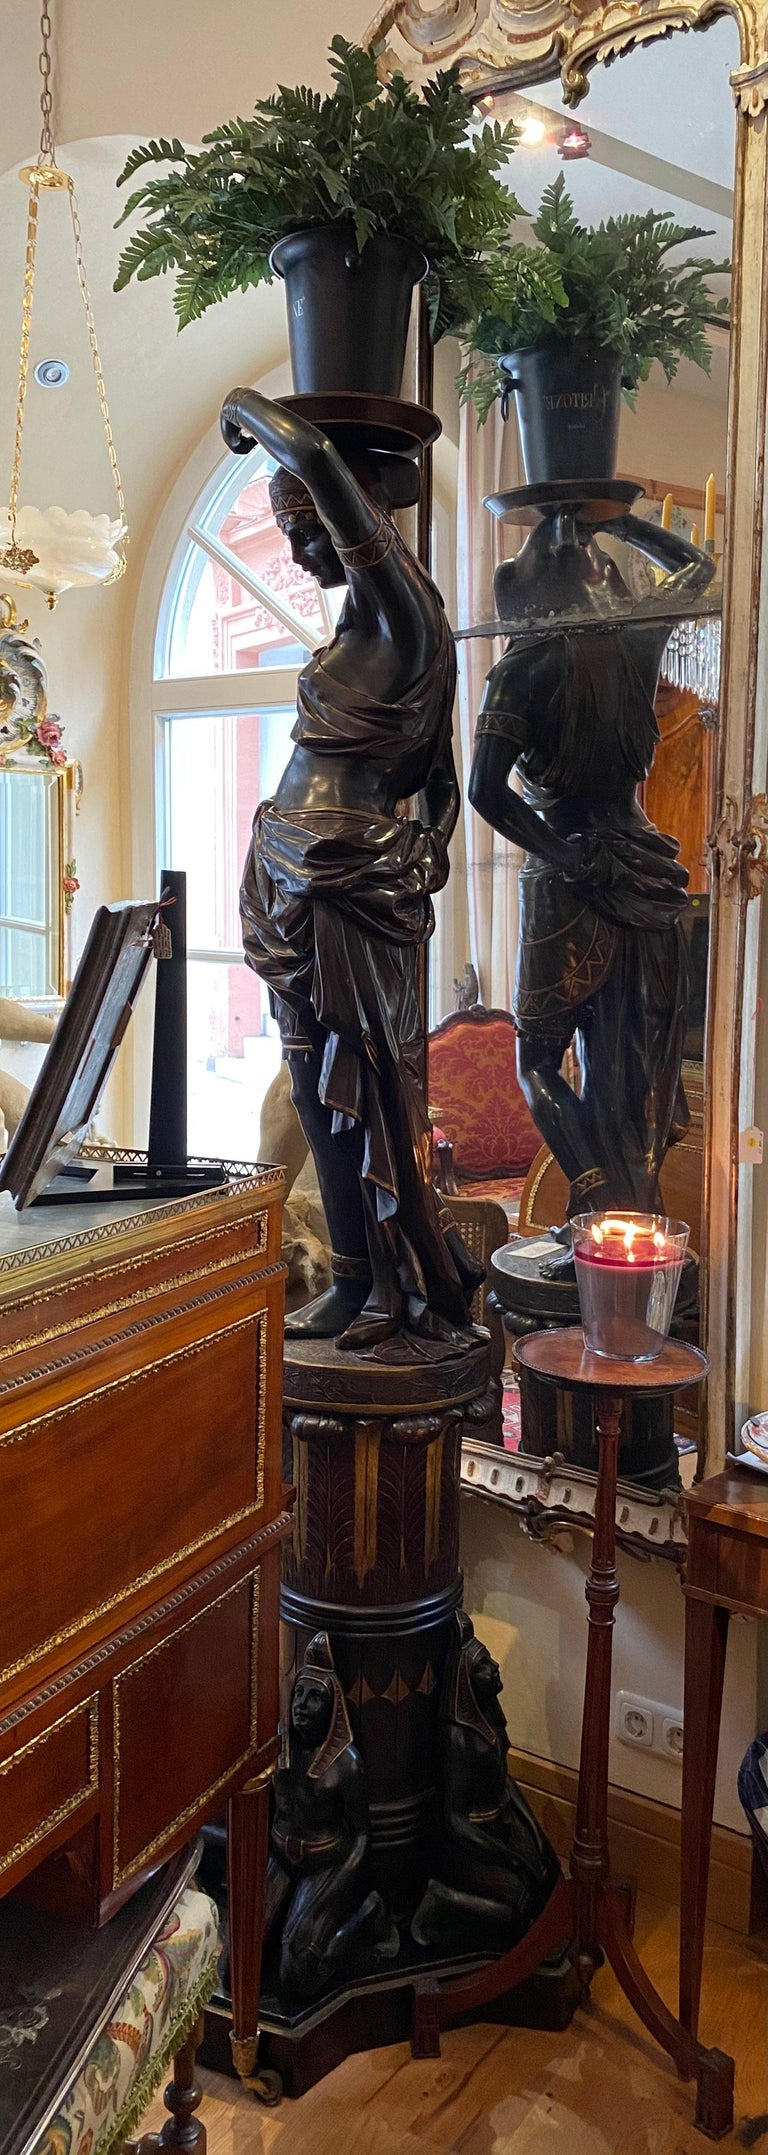 Large Guéridon Sculpture of an Egyptian Woman, Venice C. 1865, Italy For Sale 2